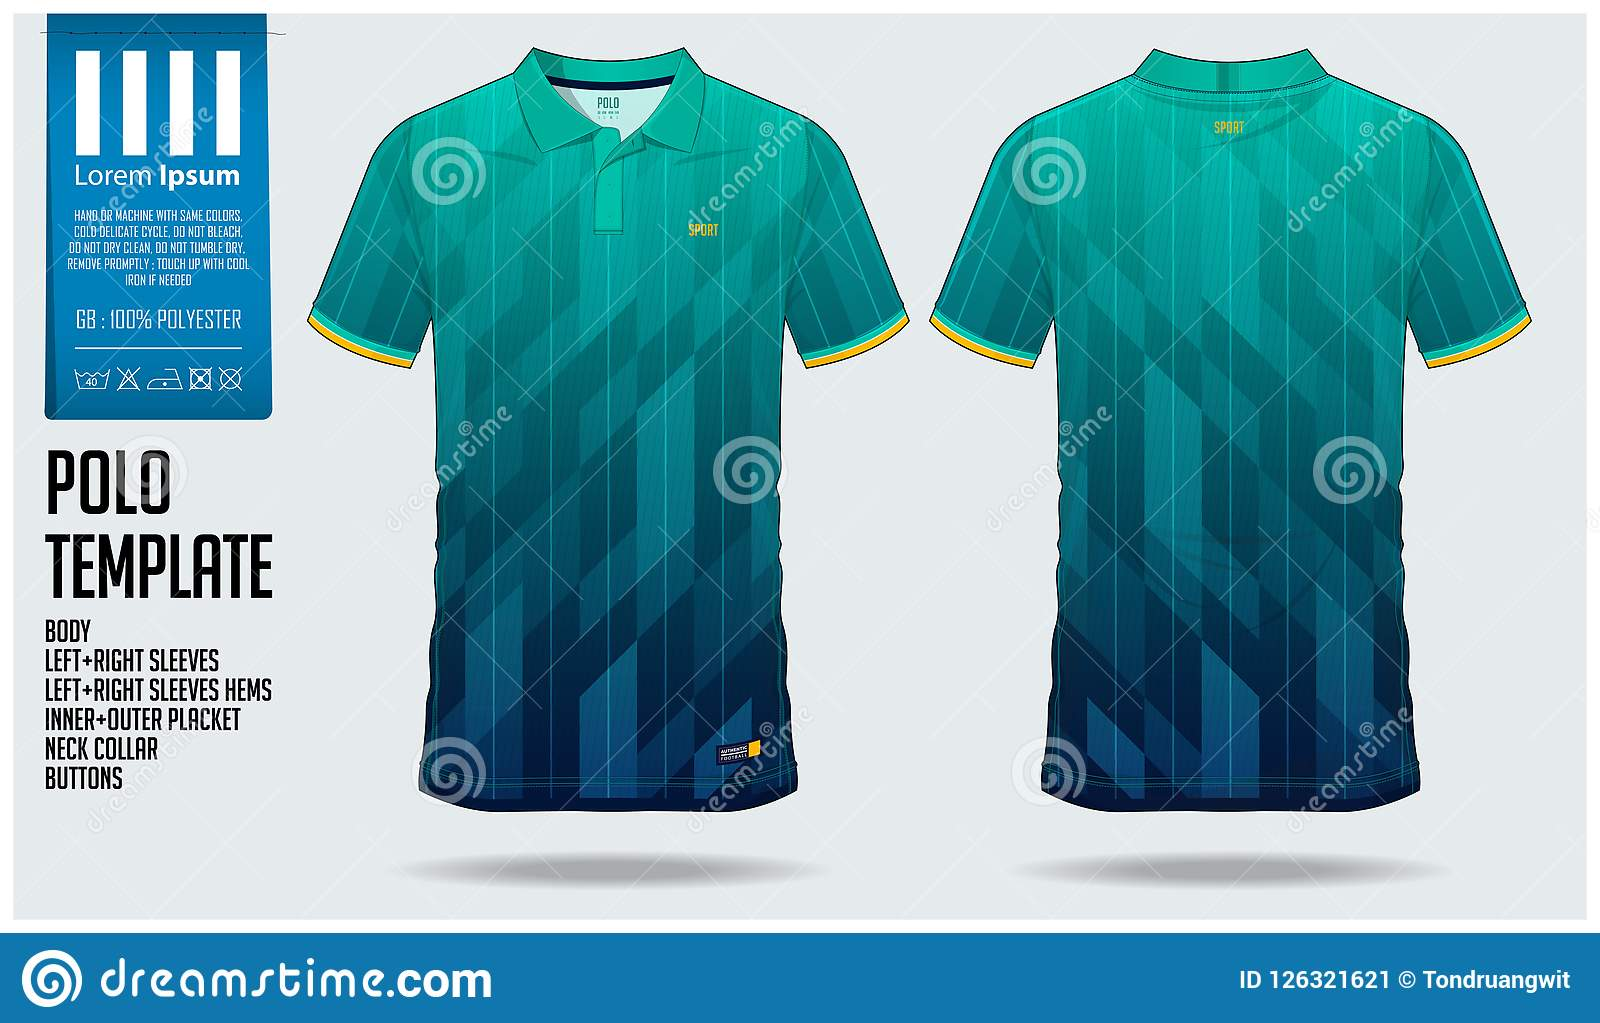 493903c62 Polo t shirt sport design template for soccer jersey, football kit or sport  club.